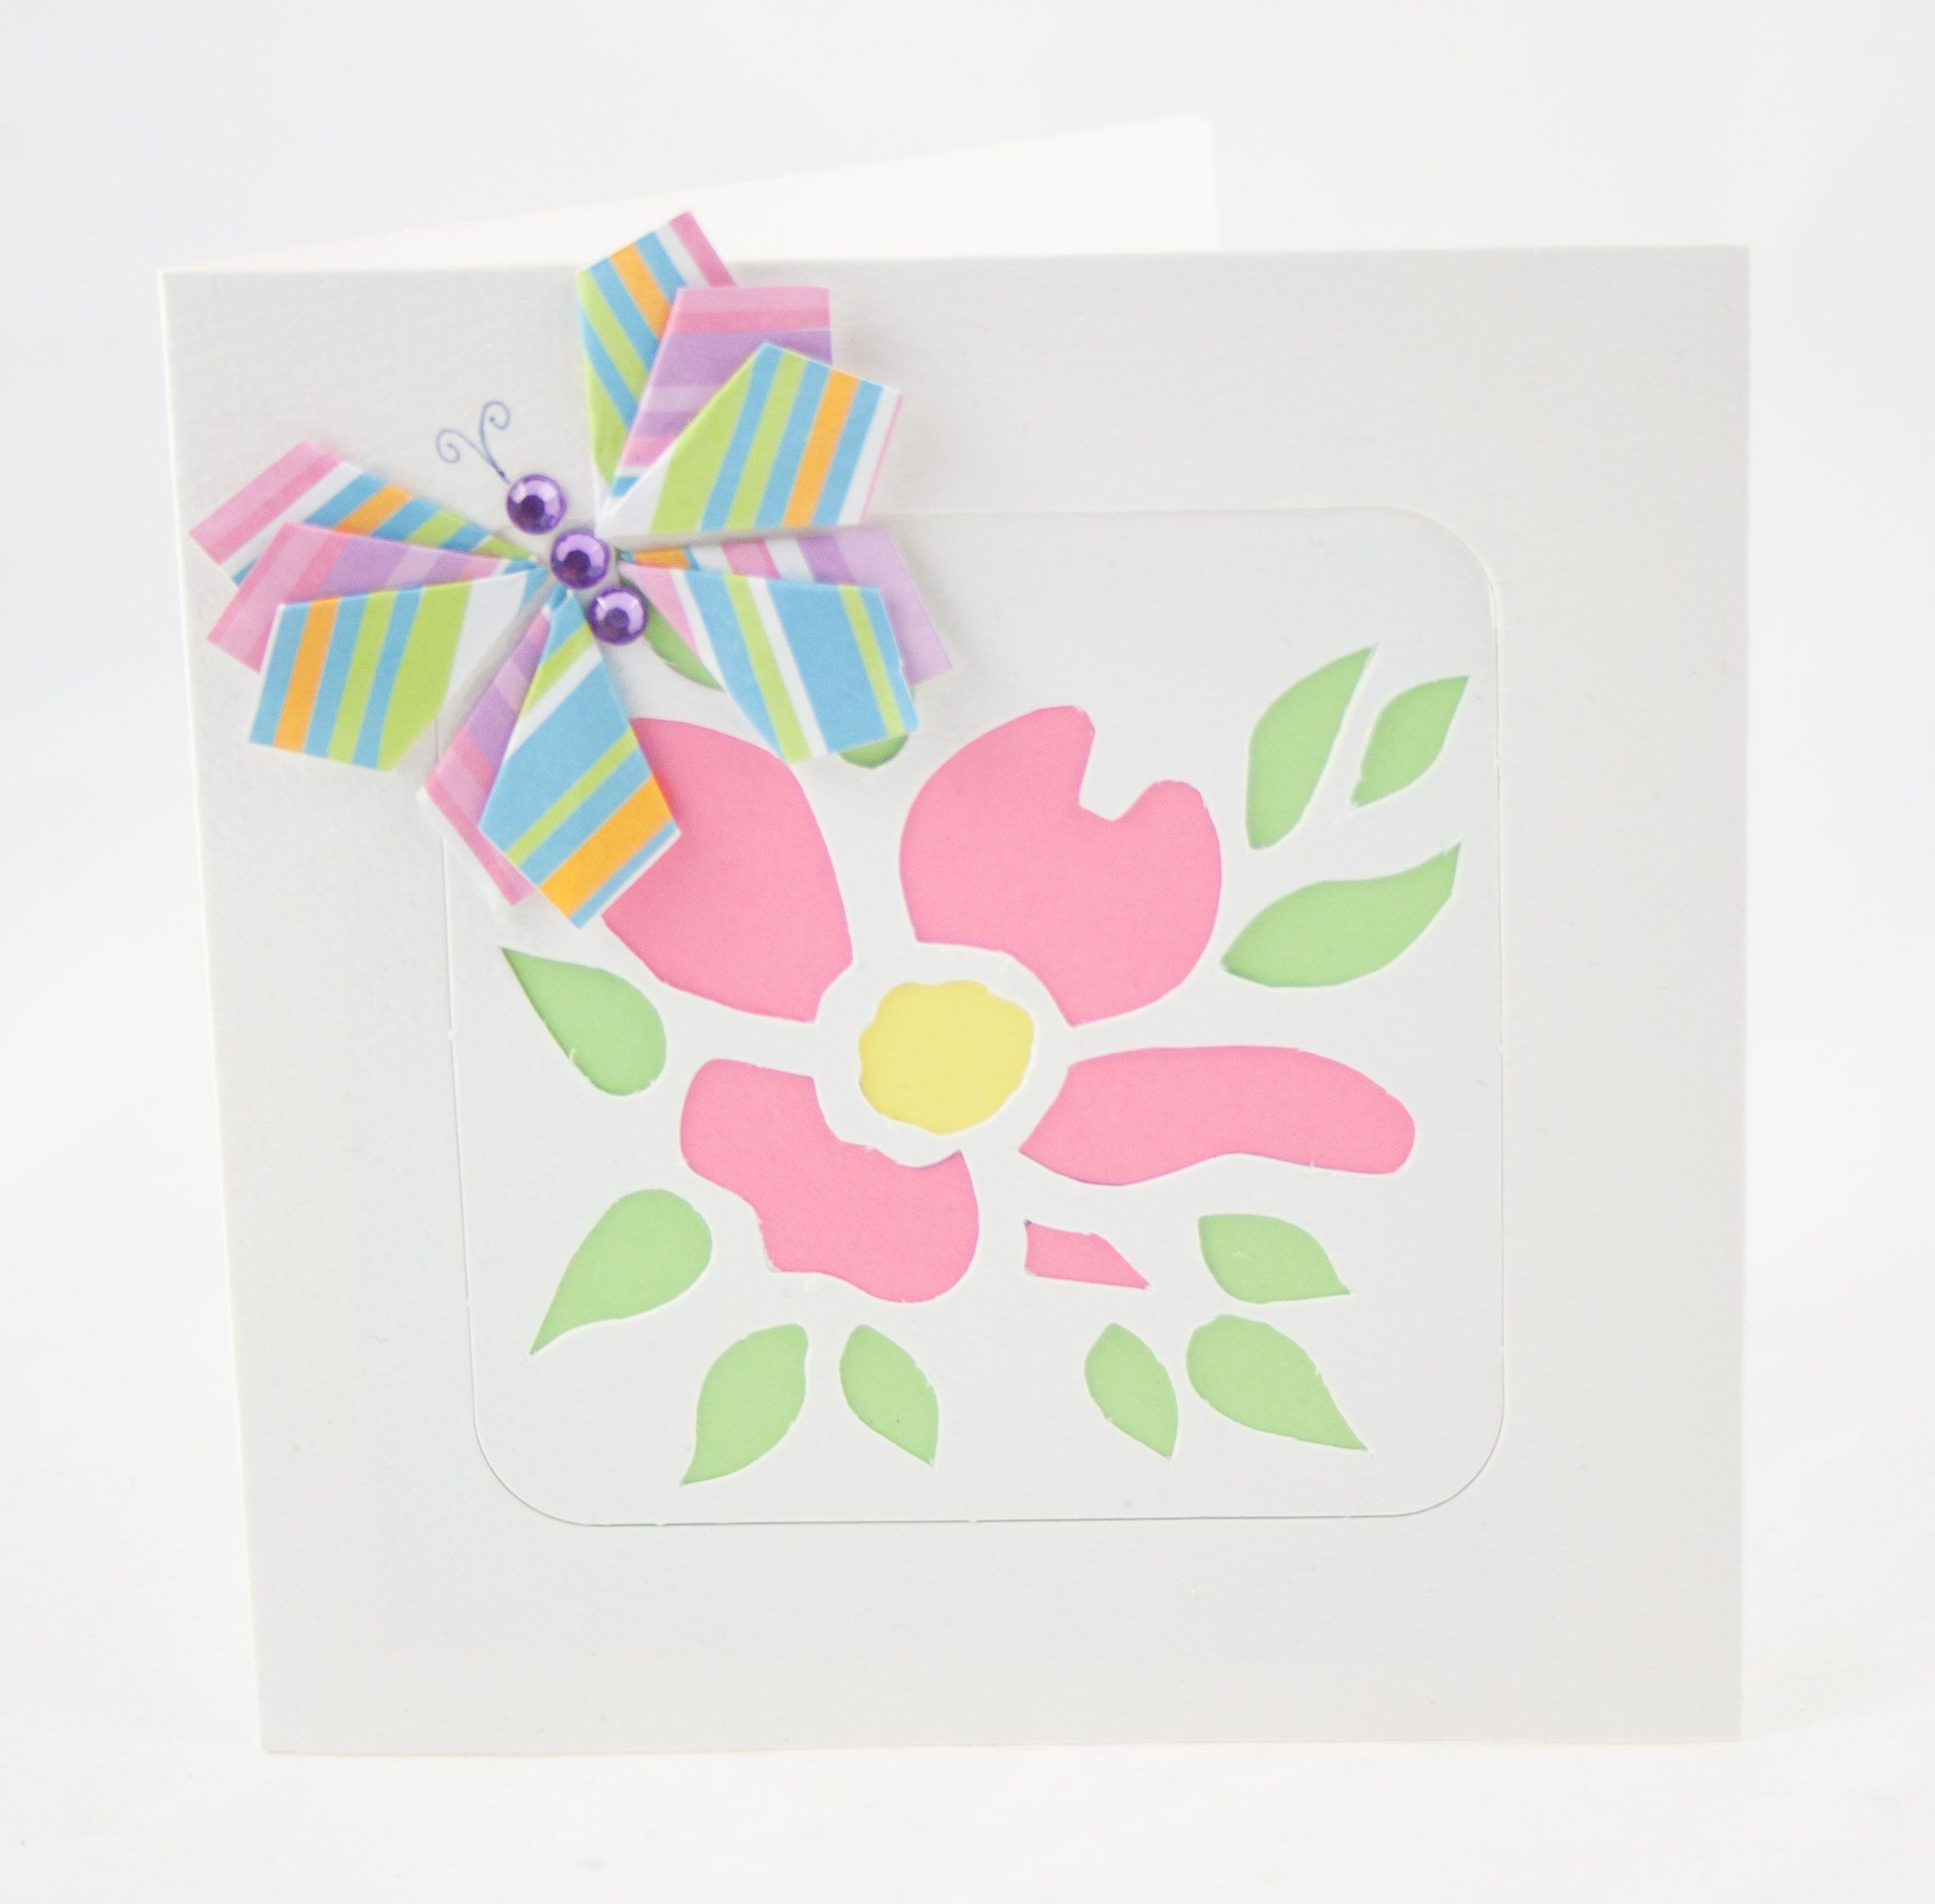 Handmade Birthday Card With A Stenciled Cut Flower And A Paper